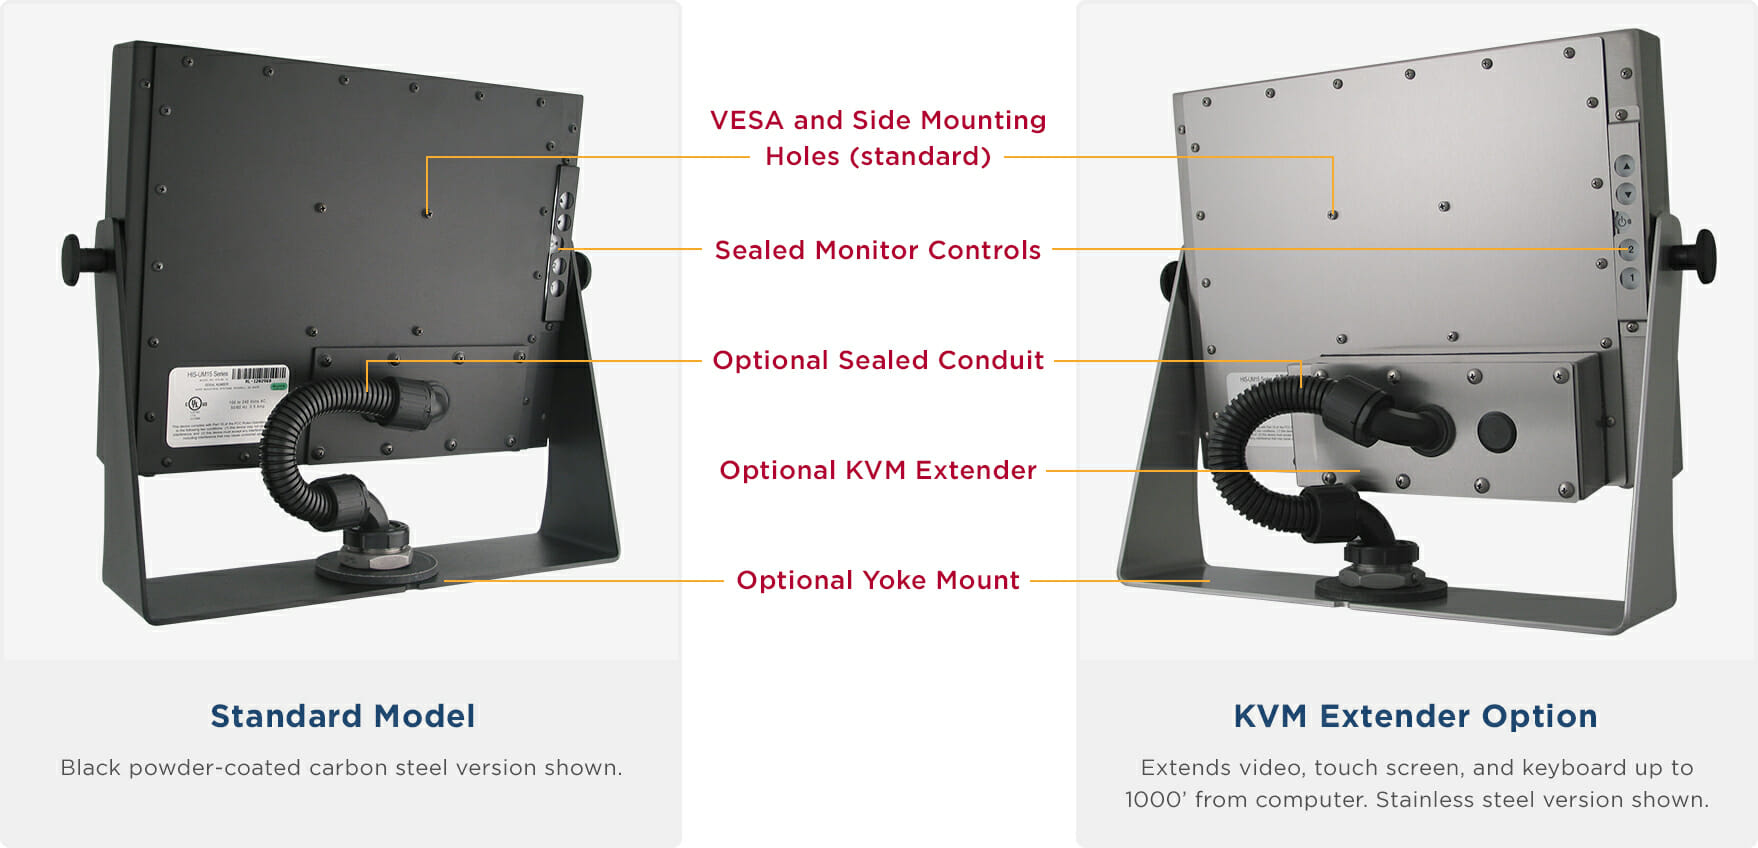 "Rear views of NEMA 4/4X Rated 15"" Universal Mount Monitors showing Industrial Enclosure features and options"